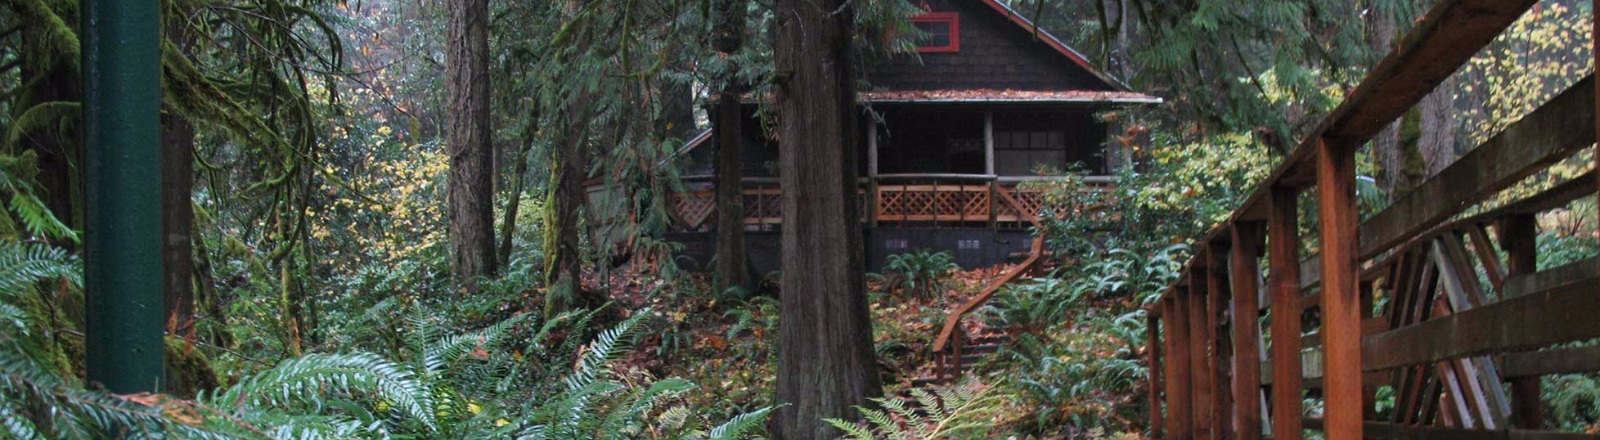 Brightwood's Liberty Lodge vacation home is nestled in a moss covered old growth forest with ferns covering the forest floor.